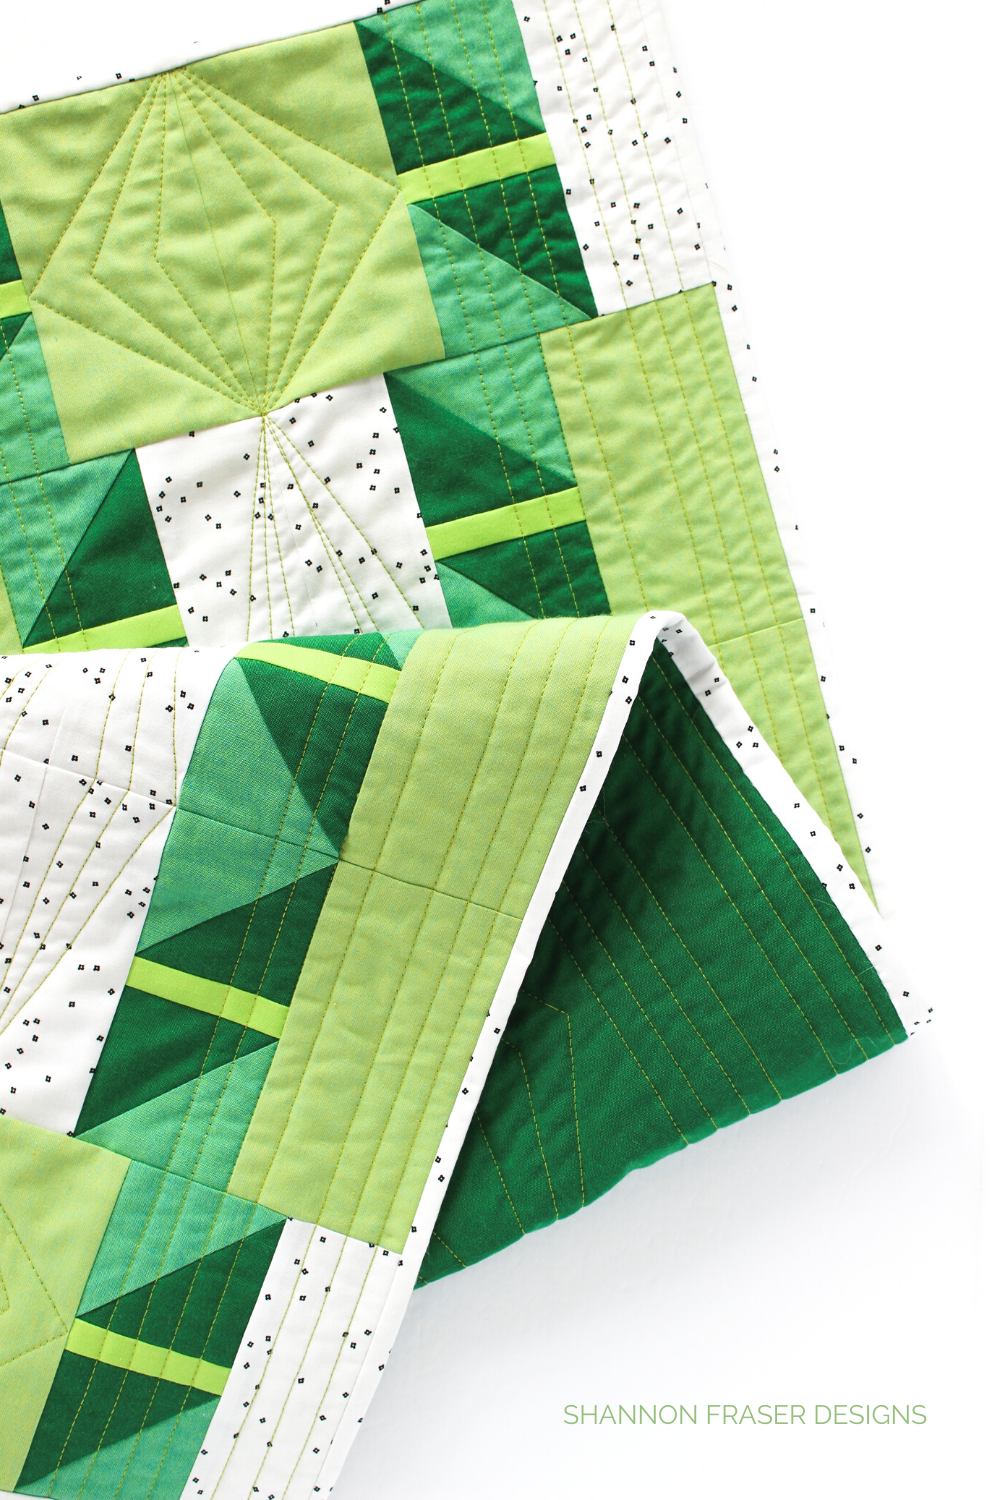 Shattered Star Table Runner - the Green Artisan Cotton one paired with 28wt Aurifil Thread for machine quilting | Shannon Fraser Designs #quiltedtablerunner